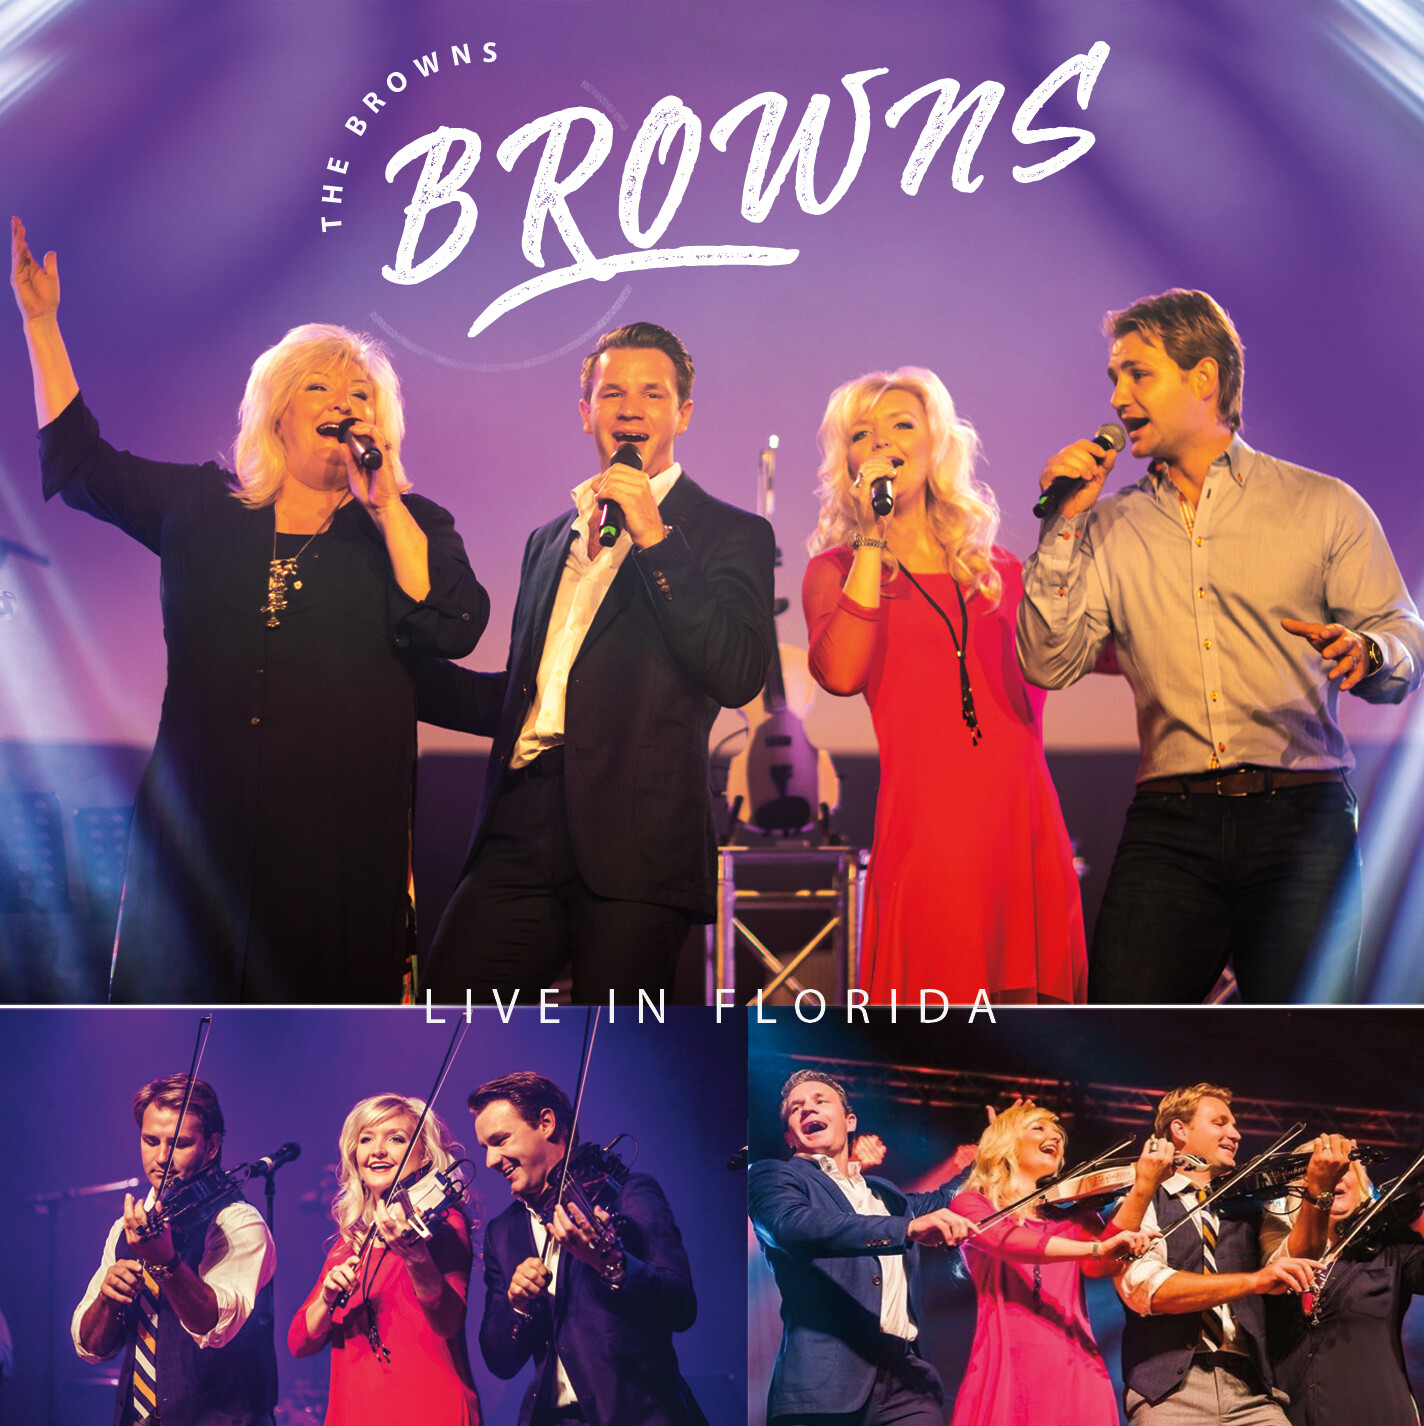 NEW - Browns Live in Florida - CD